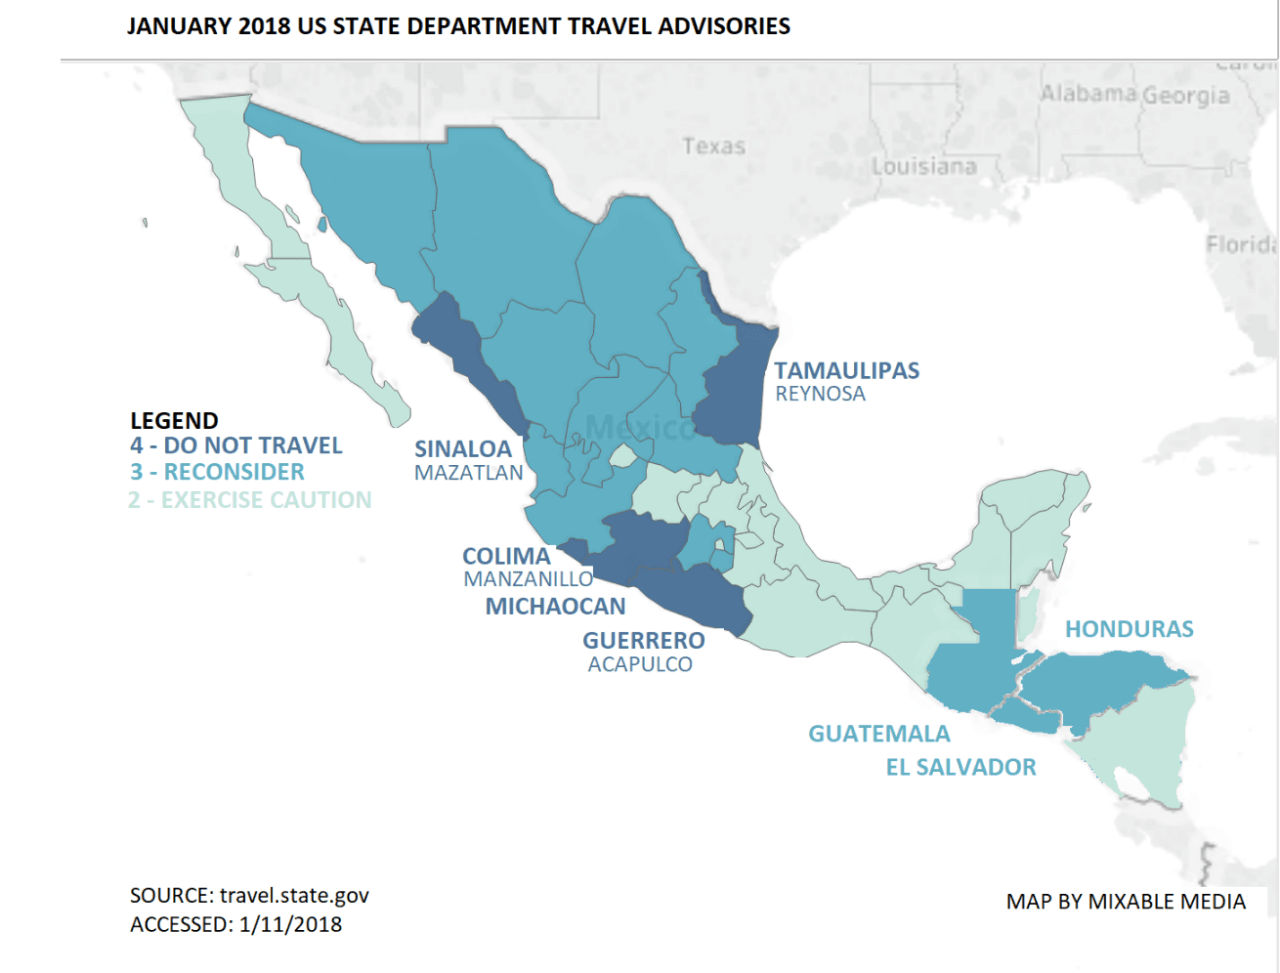 four out of five do not travel states homes to 12 million people rim the eastern pacific ocean on mexicos west coast